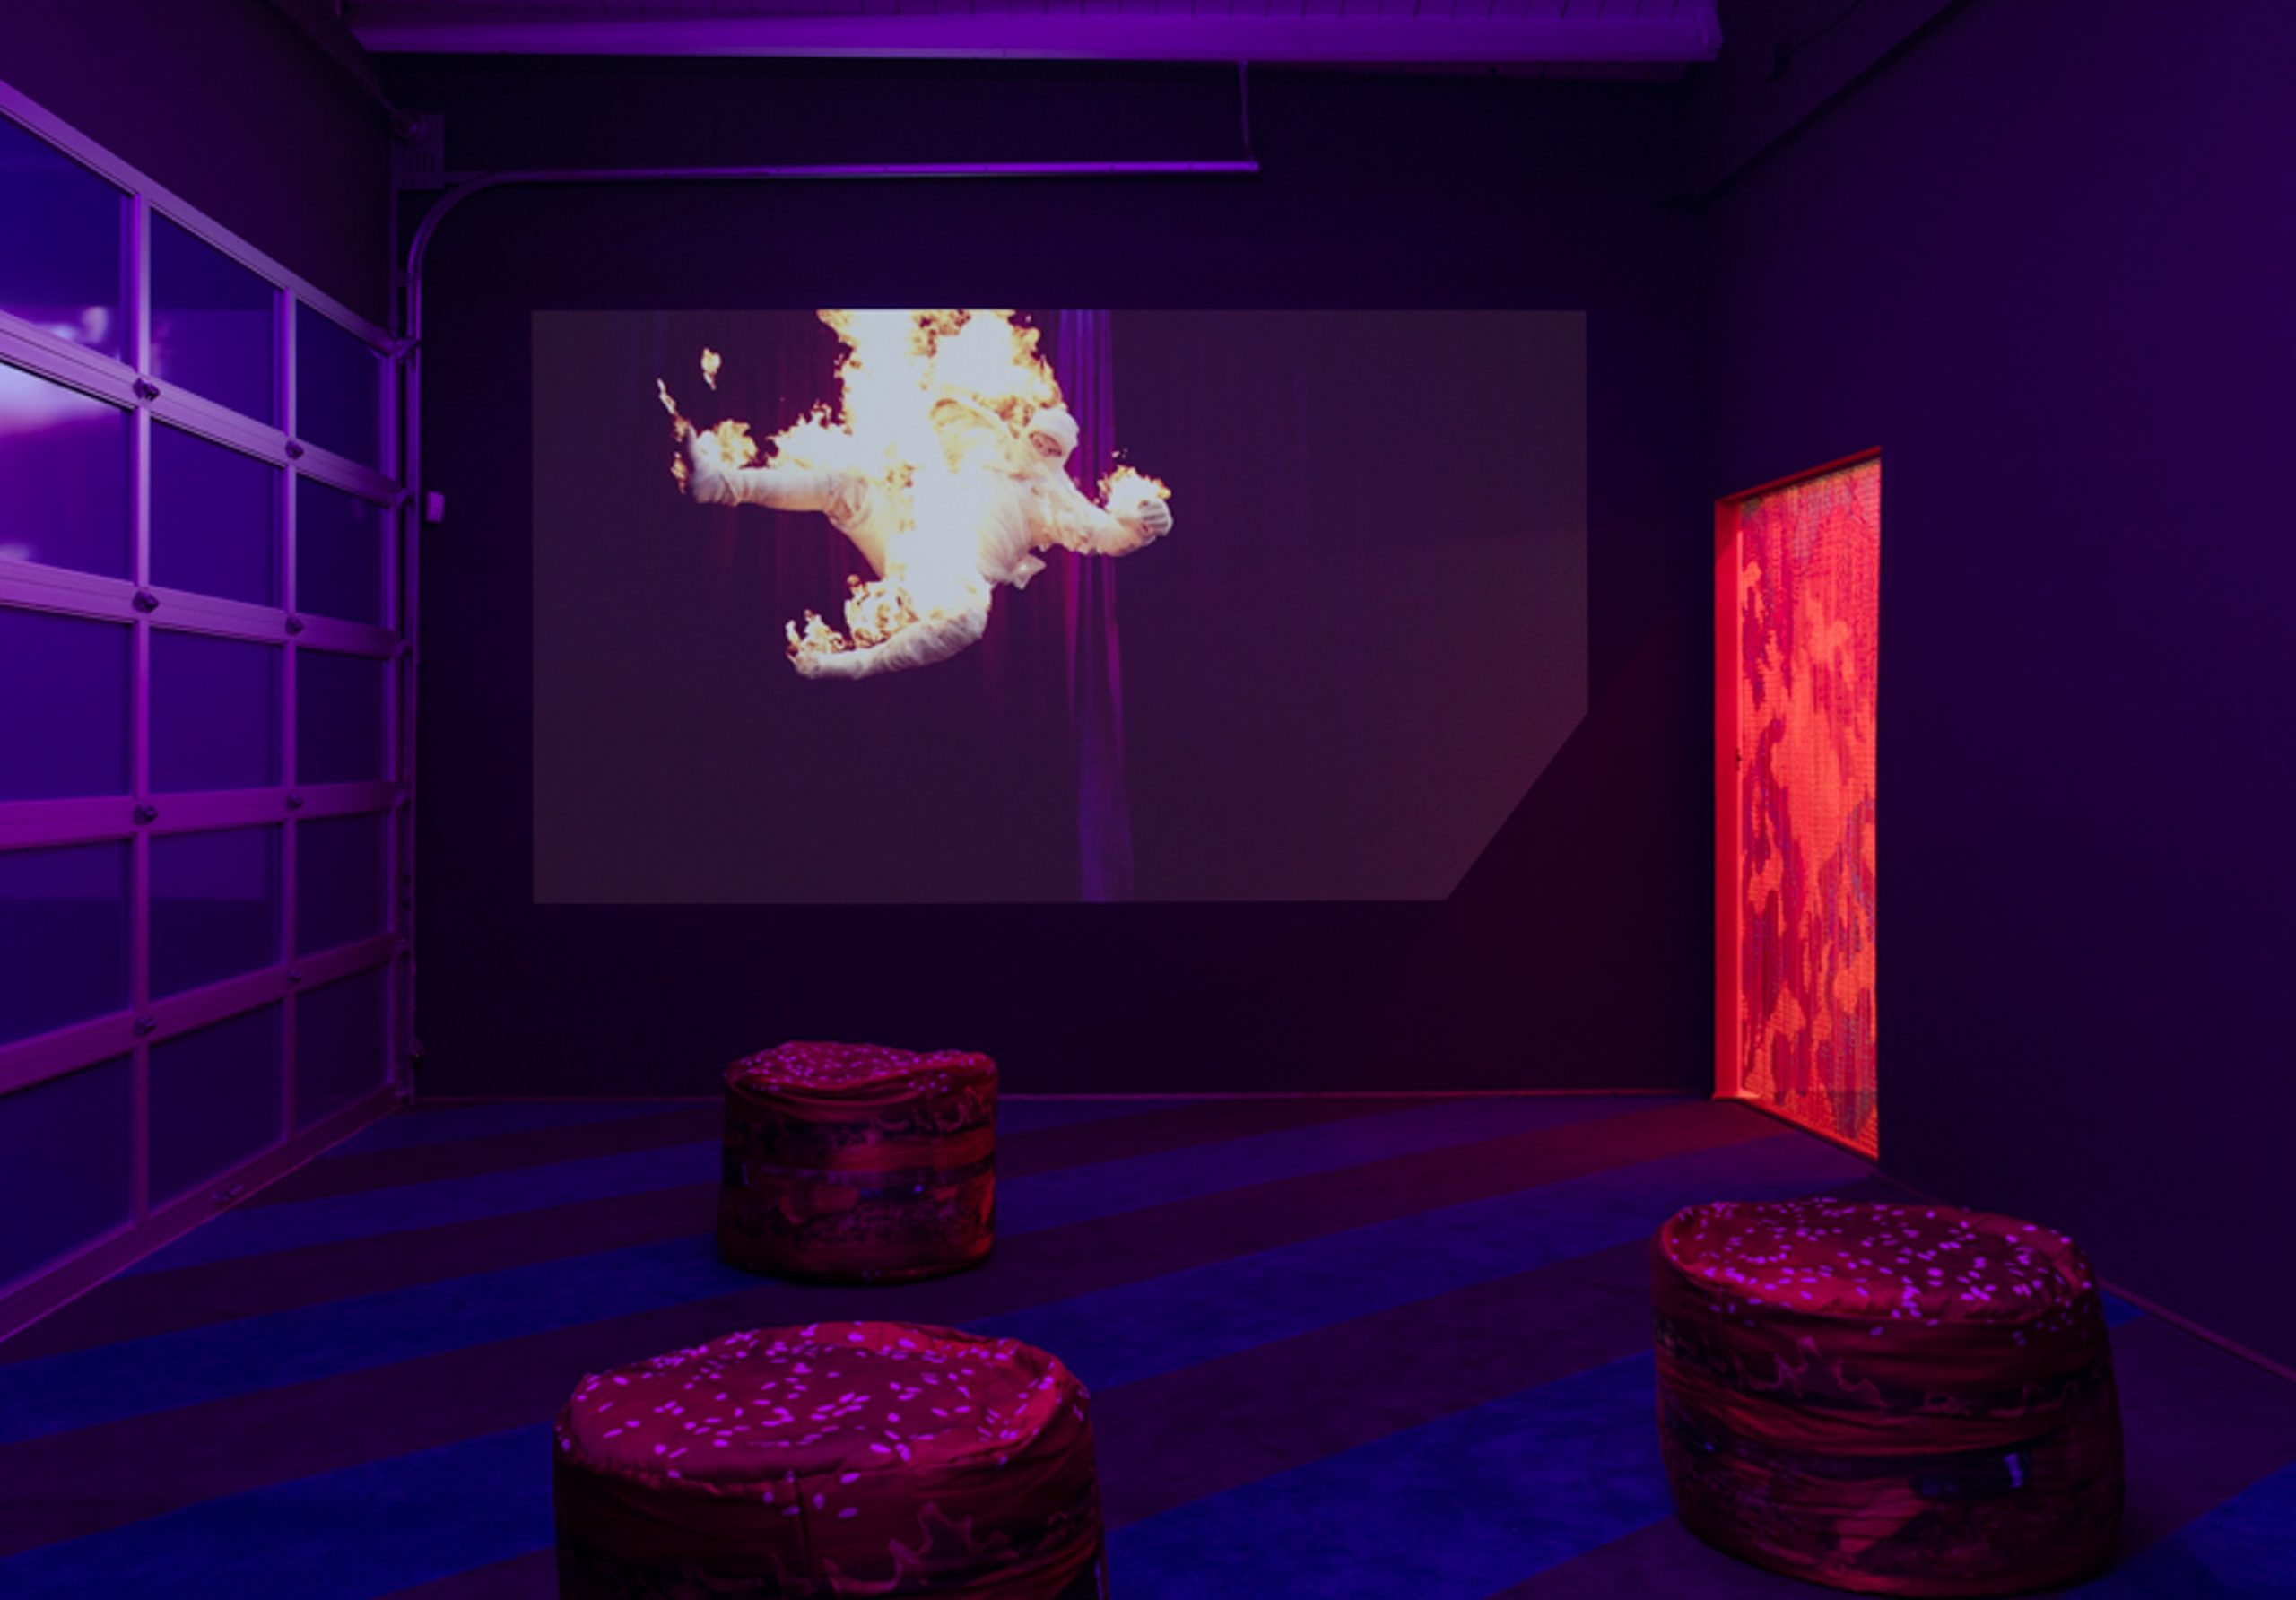 Alex Da Corte: A Season in He'll', installation view. Art + Practice, Los Angeles. July 9-September 17, 2016. Photo by Brian Forrest/Hammer Museum.